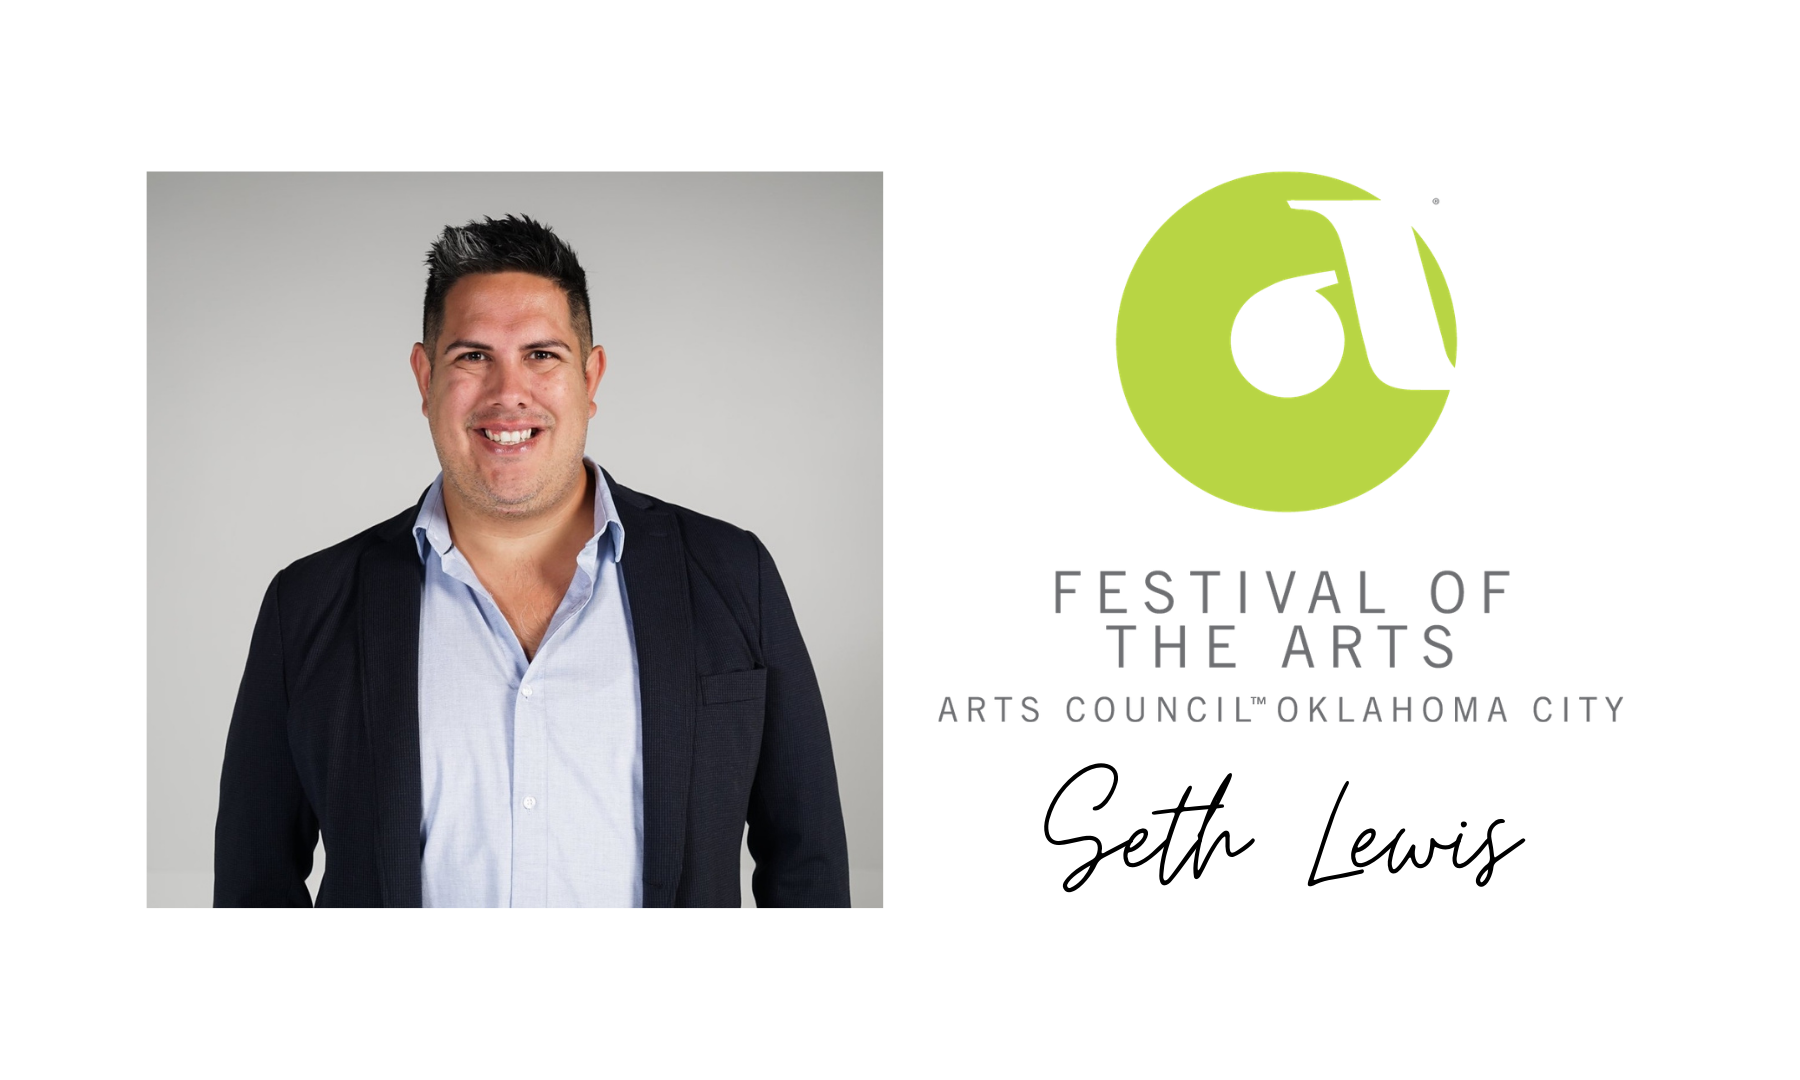 Seth Lewis, Director of Festival of the Arts